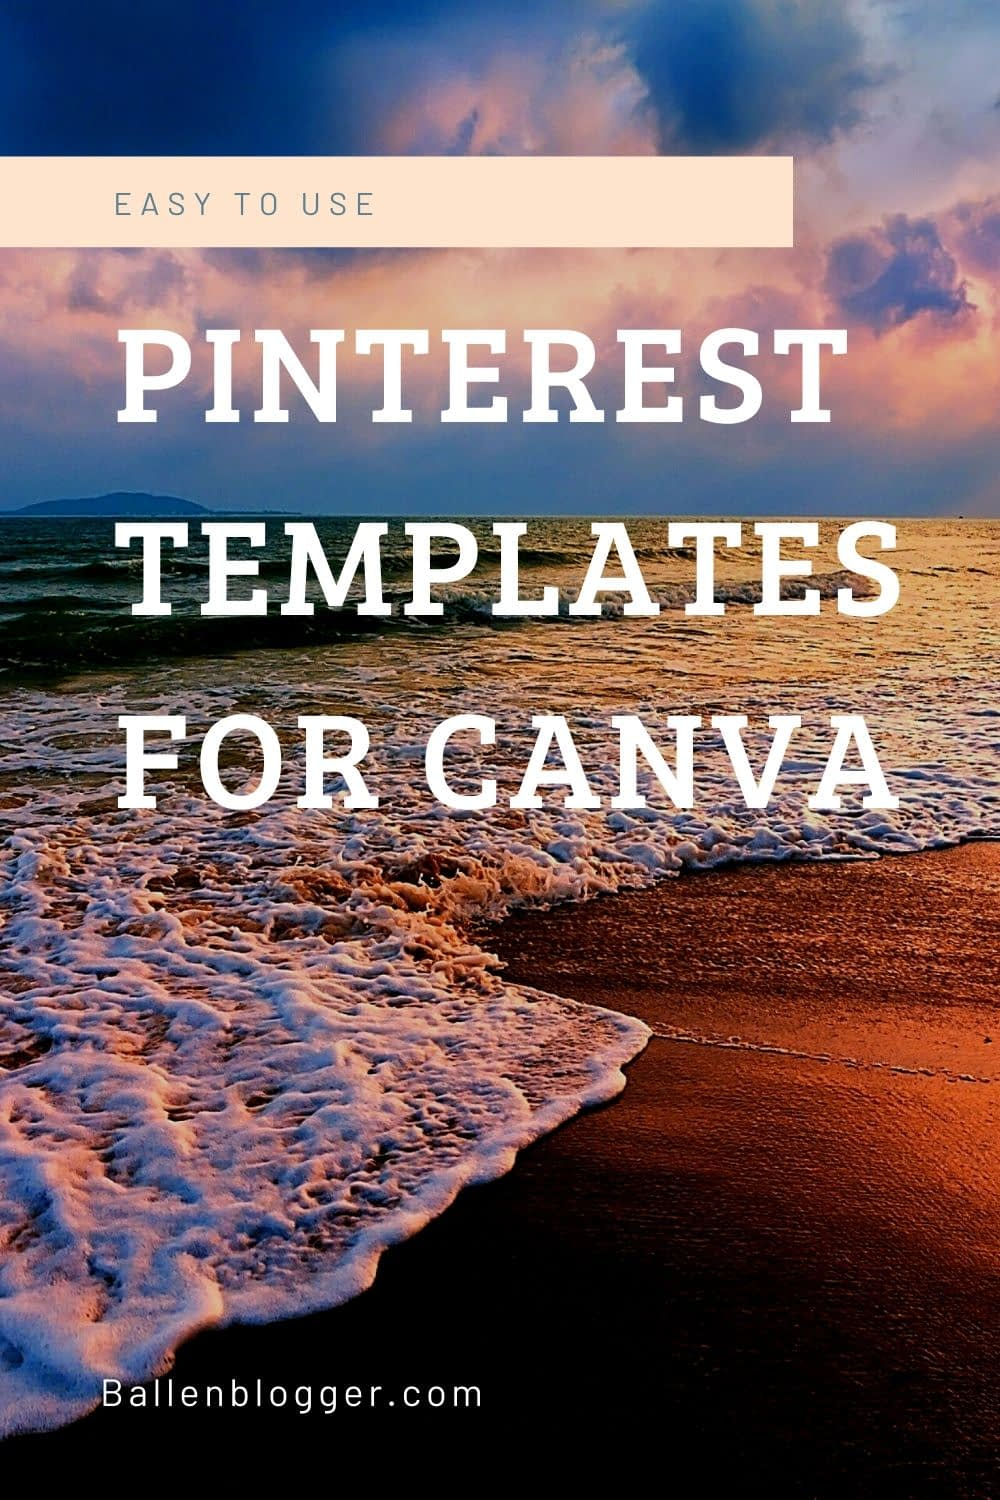 You don't need to be a designer nor does it have to take much time to create fresh designs. Check out Creative Market and Ladyboss Studio for amazing pinterest templates that work with canva.